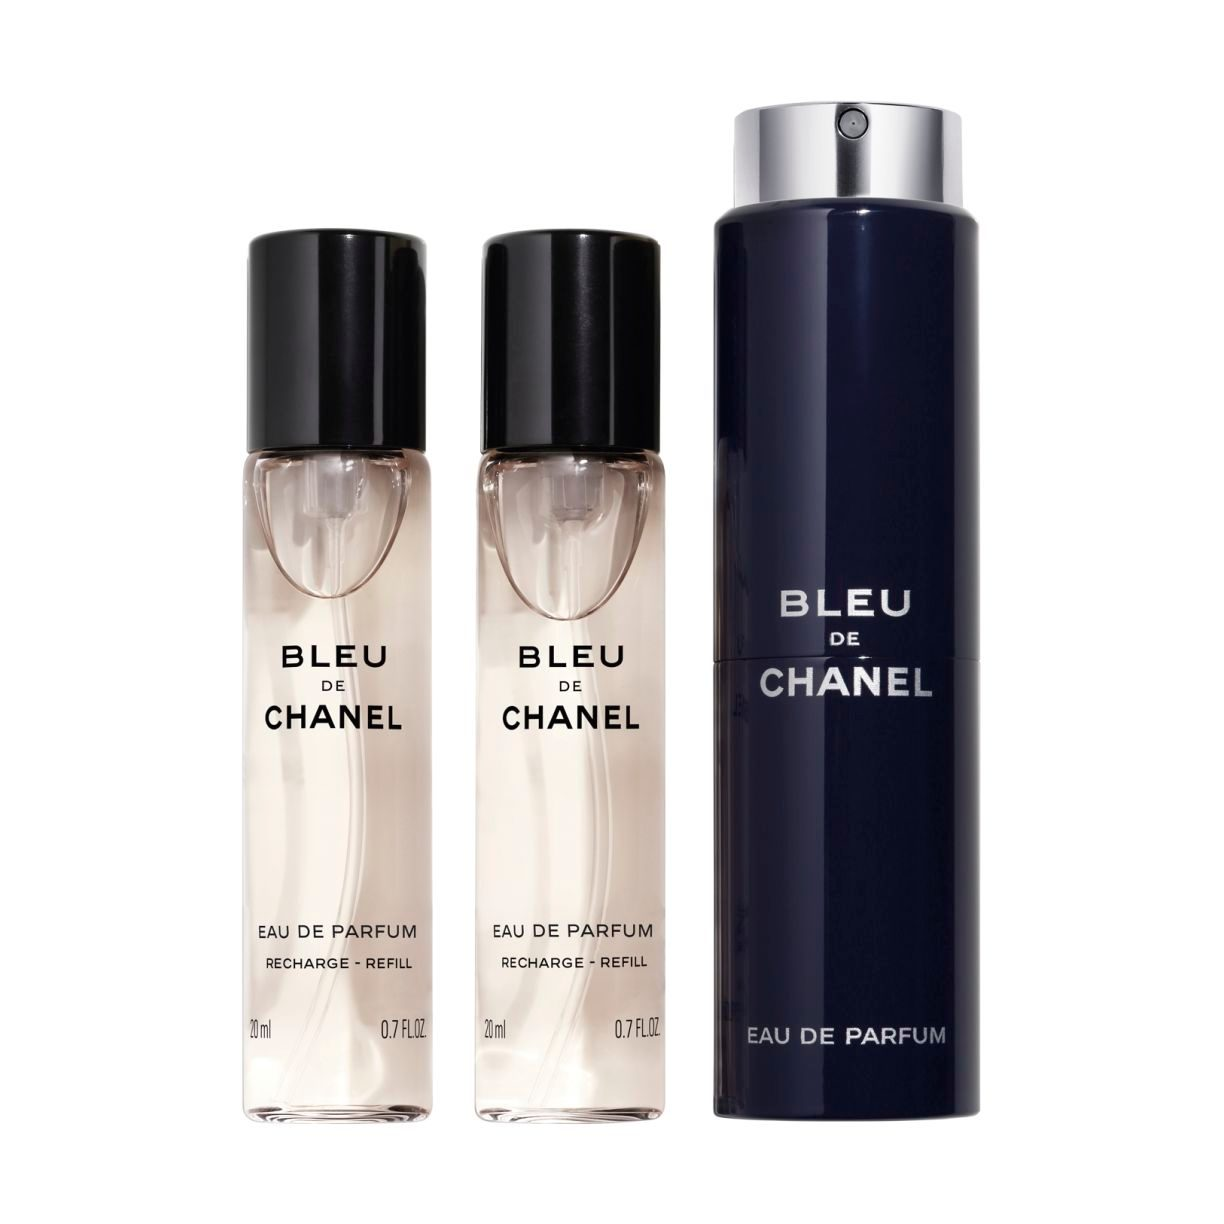 BLEU DE CHANEL EAU DE PARFUM TWIST & SPRAY